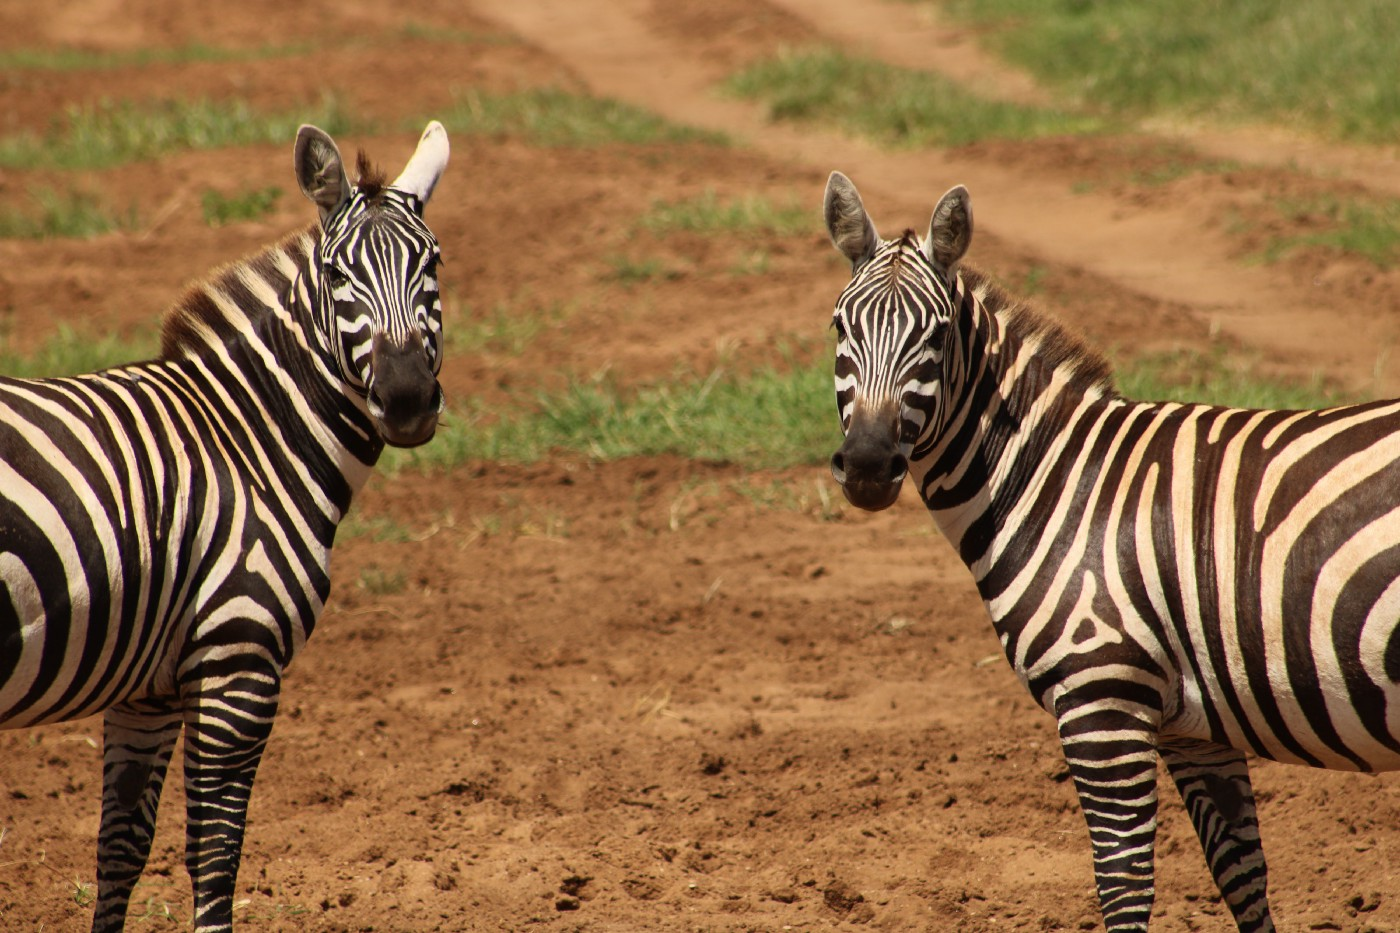 Zebra's because doctors are taught, when you hear hoofbeats, think horse not zebra. But, there are zebras.